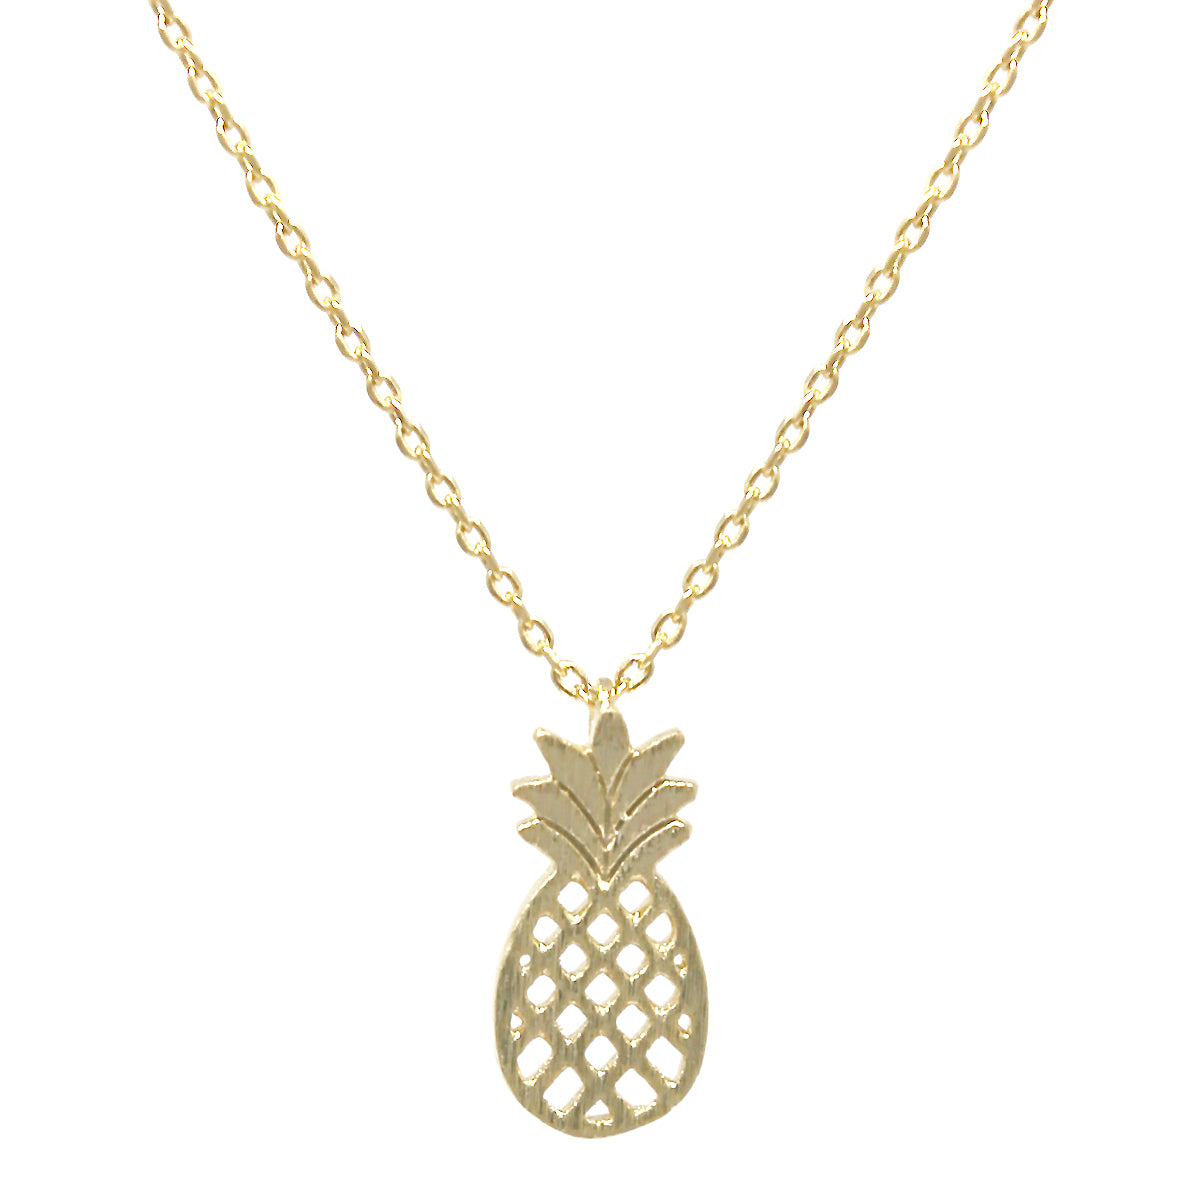 Pineapple Brushed Metal Pendant Simple Chain Short Necklace